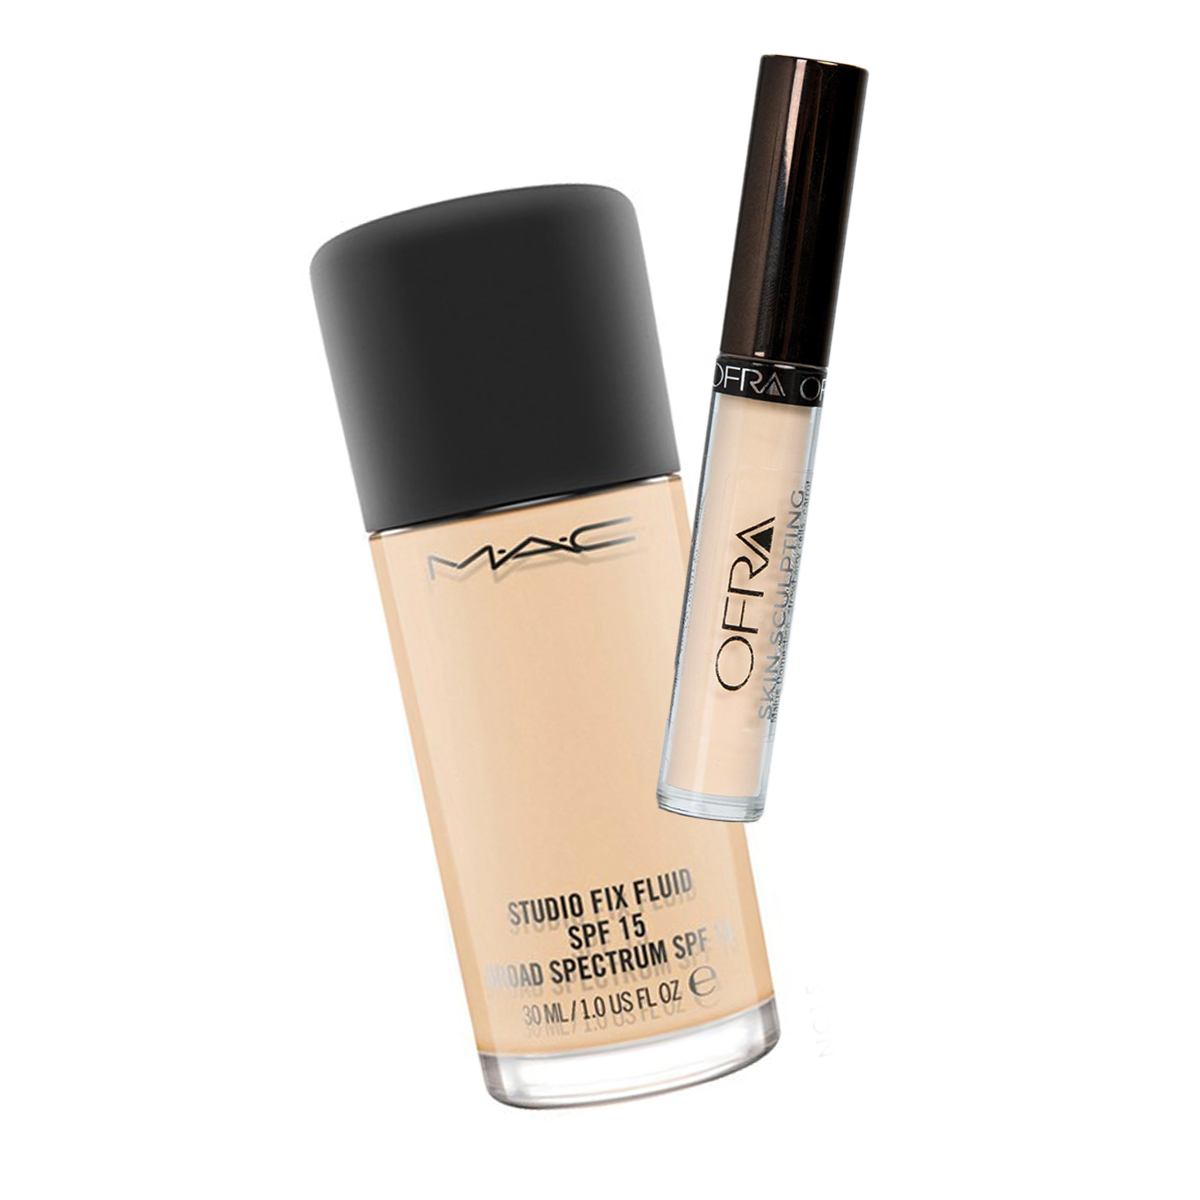 M.A.C COSMETICS STUDIO FIX FLUID SPF 15 FOUNDATION  //  OFRA COSMETICS SKIN SCULPTING WAND